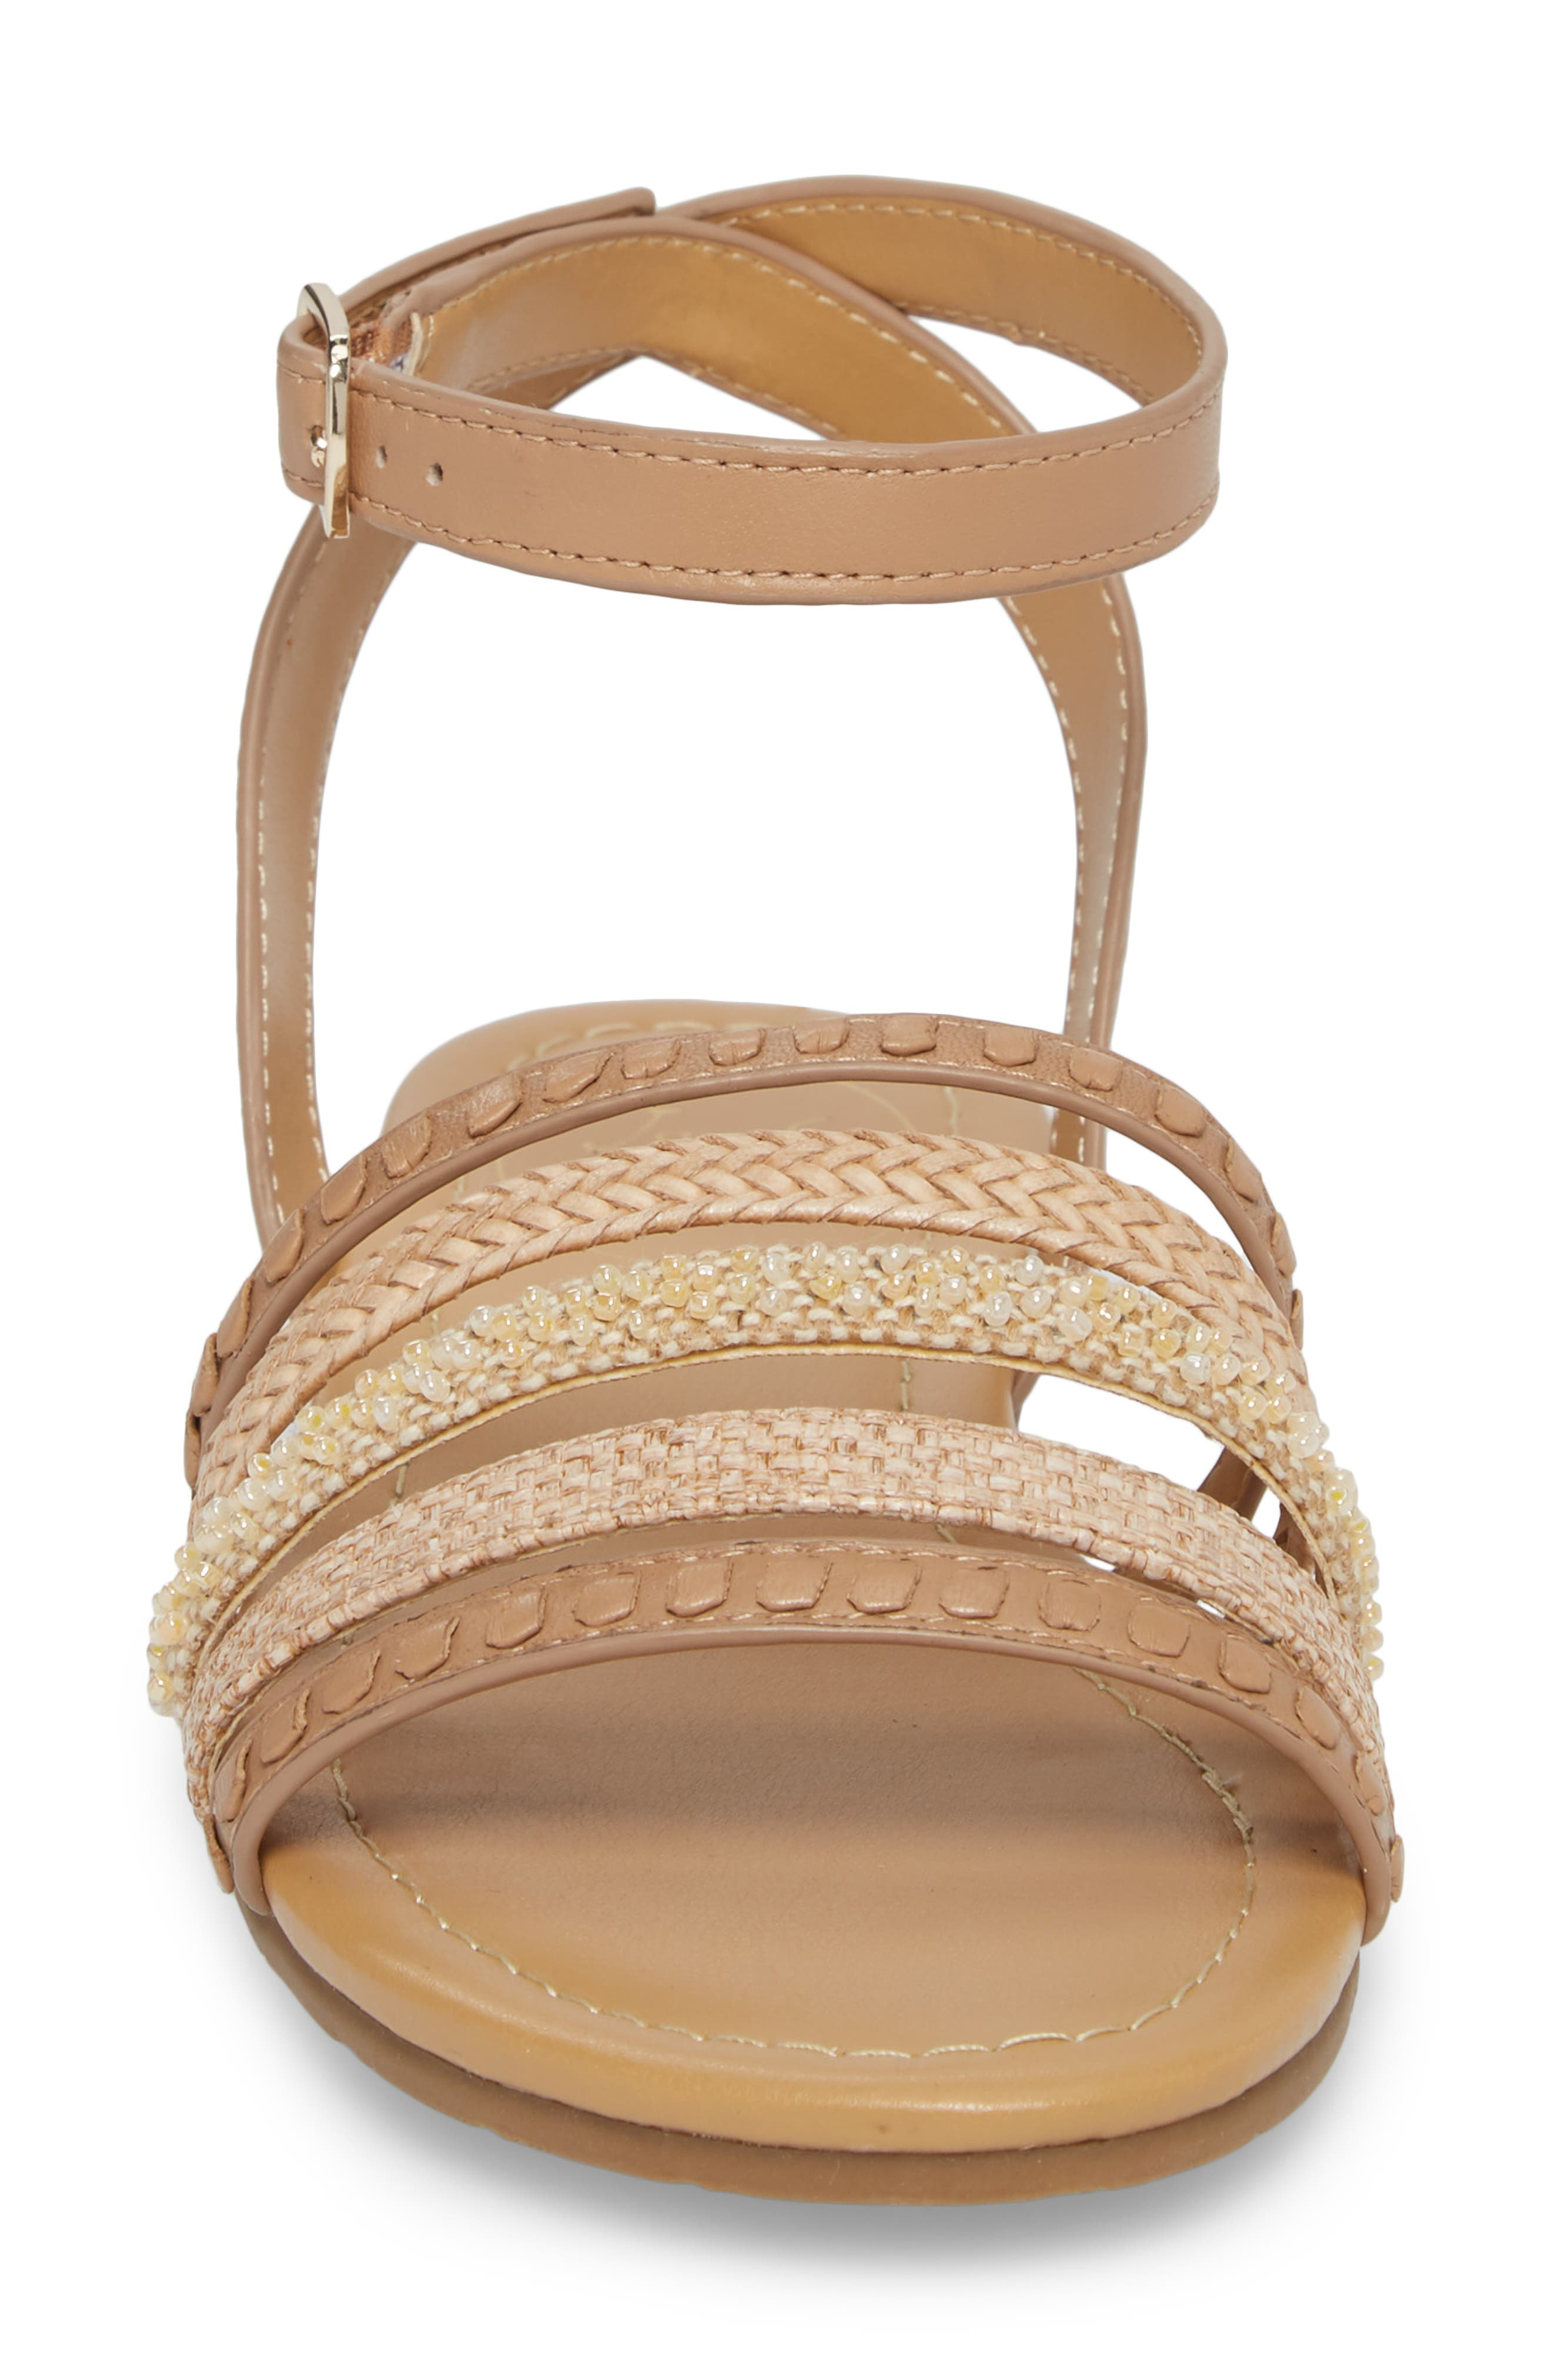 Hannah Braided Embellished Sandal,                             Alternate thumbnail 4, color,                             BUFF LEATHER